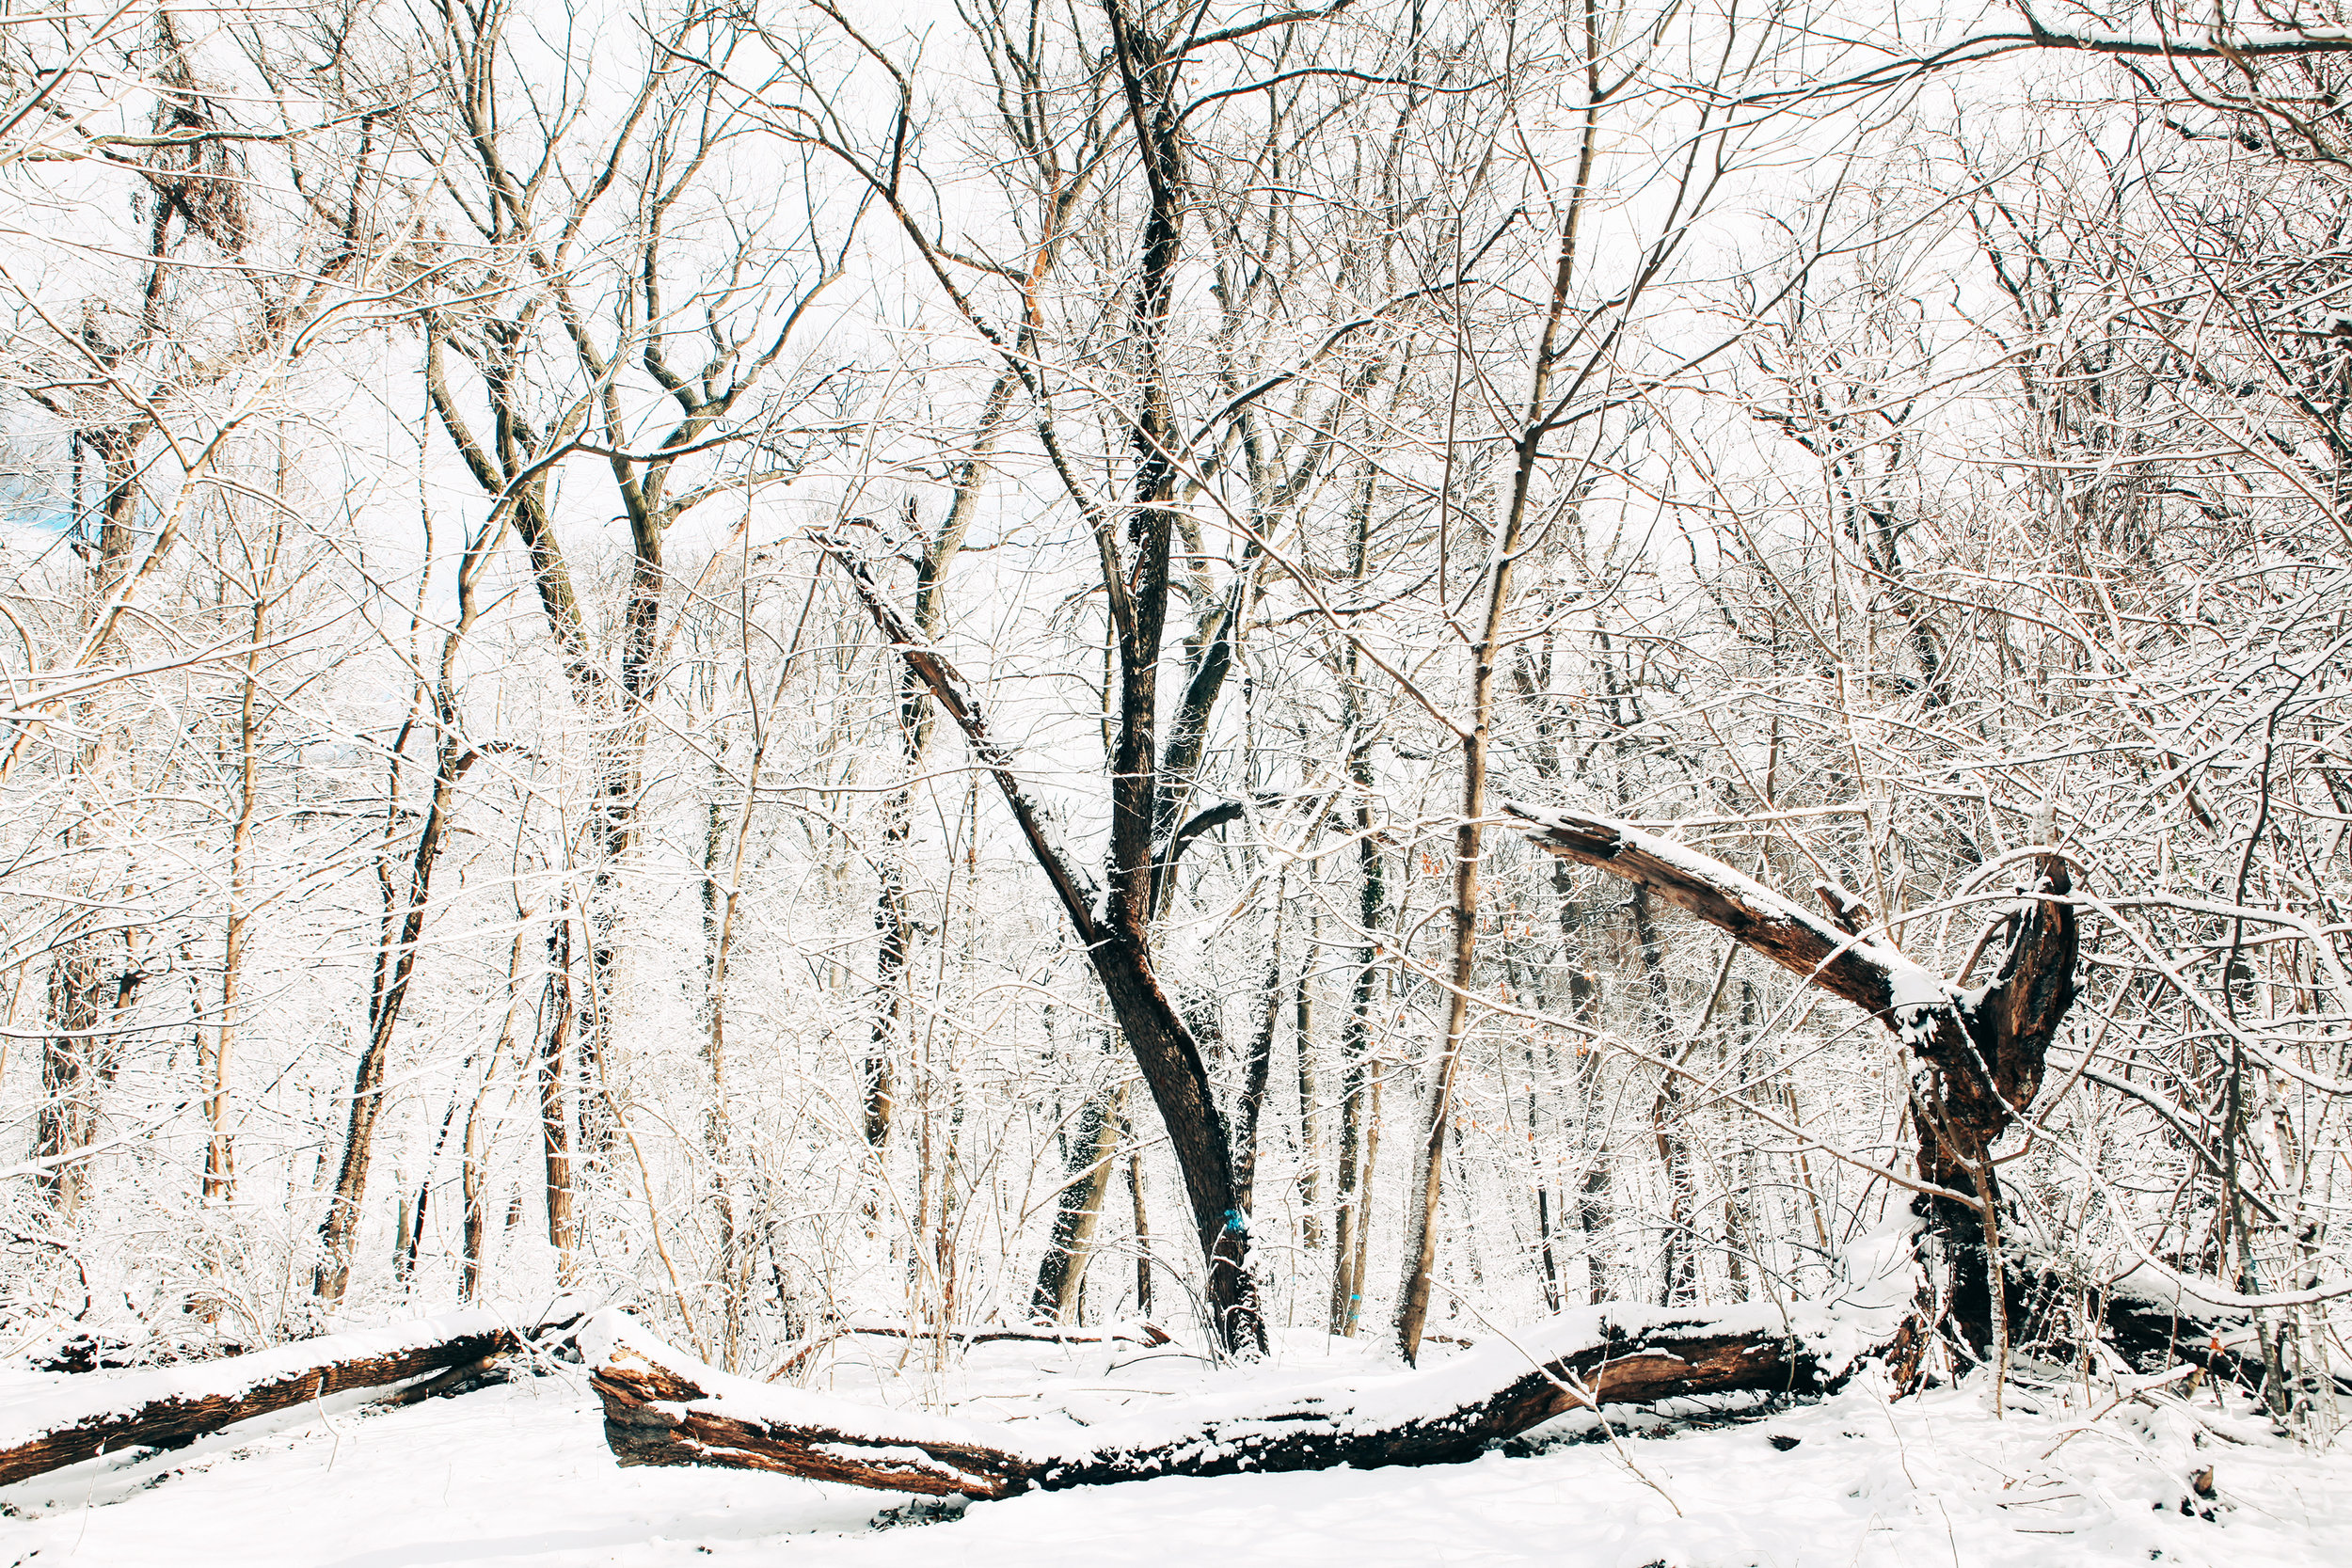 20170209_Philadelphia_Snow_Fiarmount_Park_Joe_Mac_Creative_0120.jpg